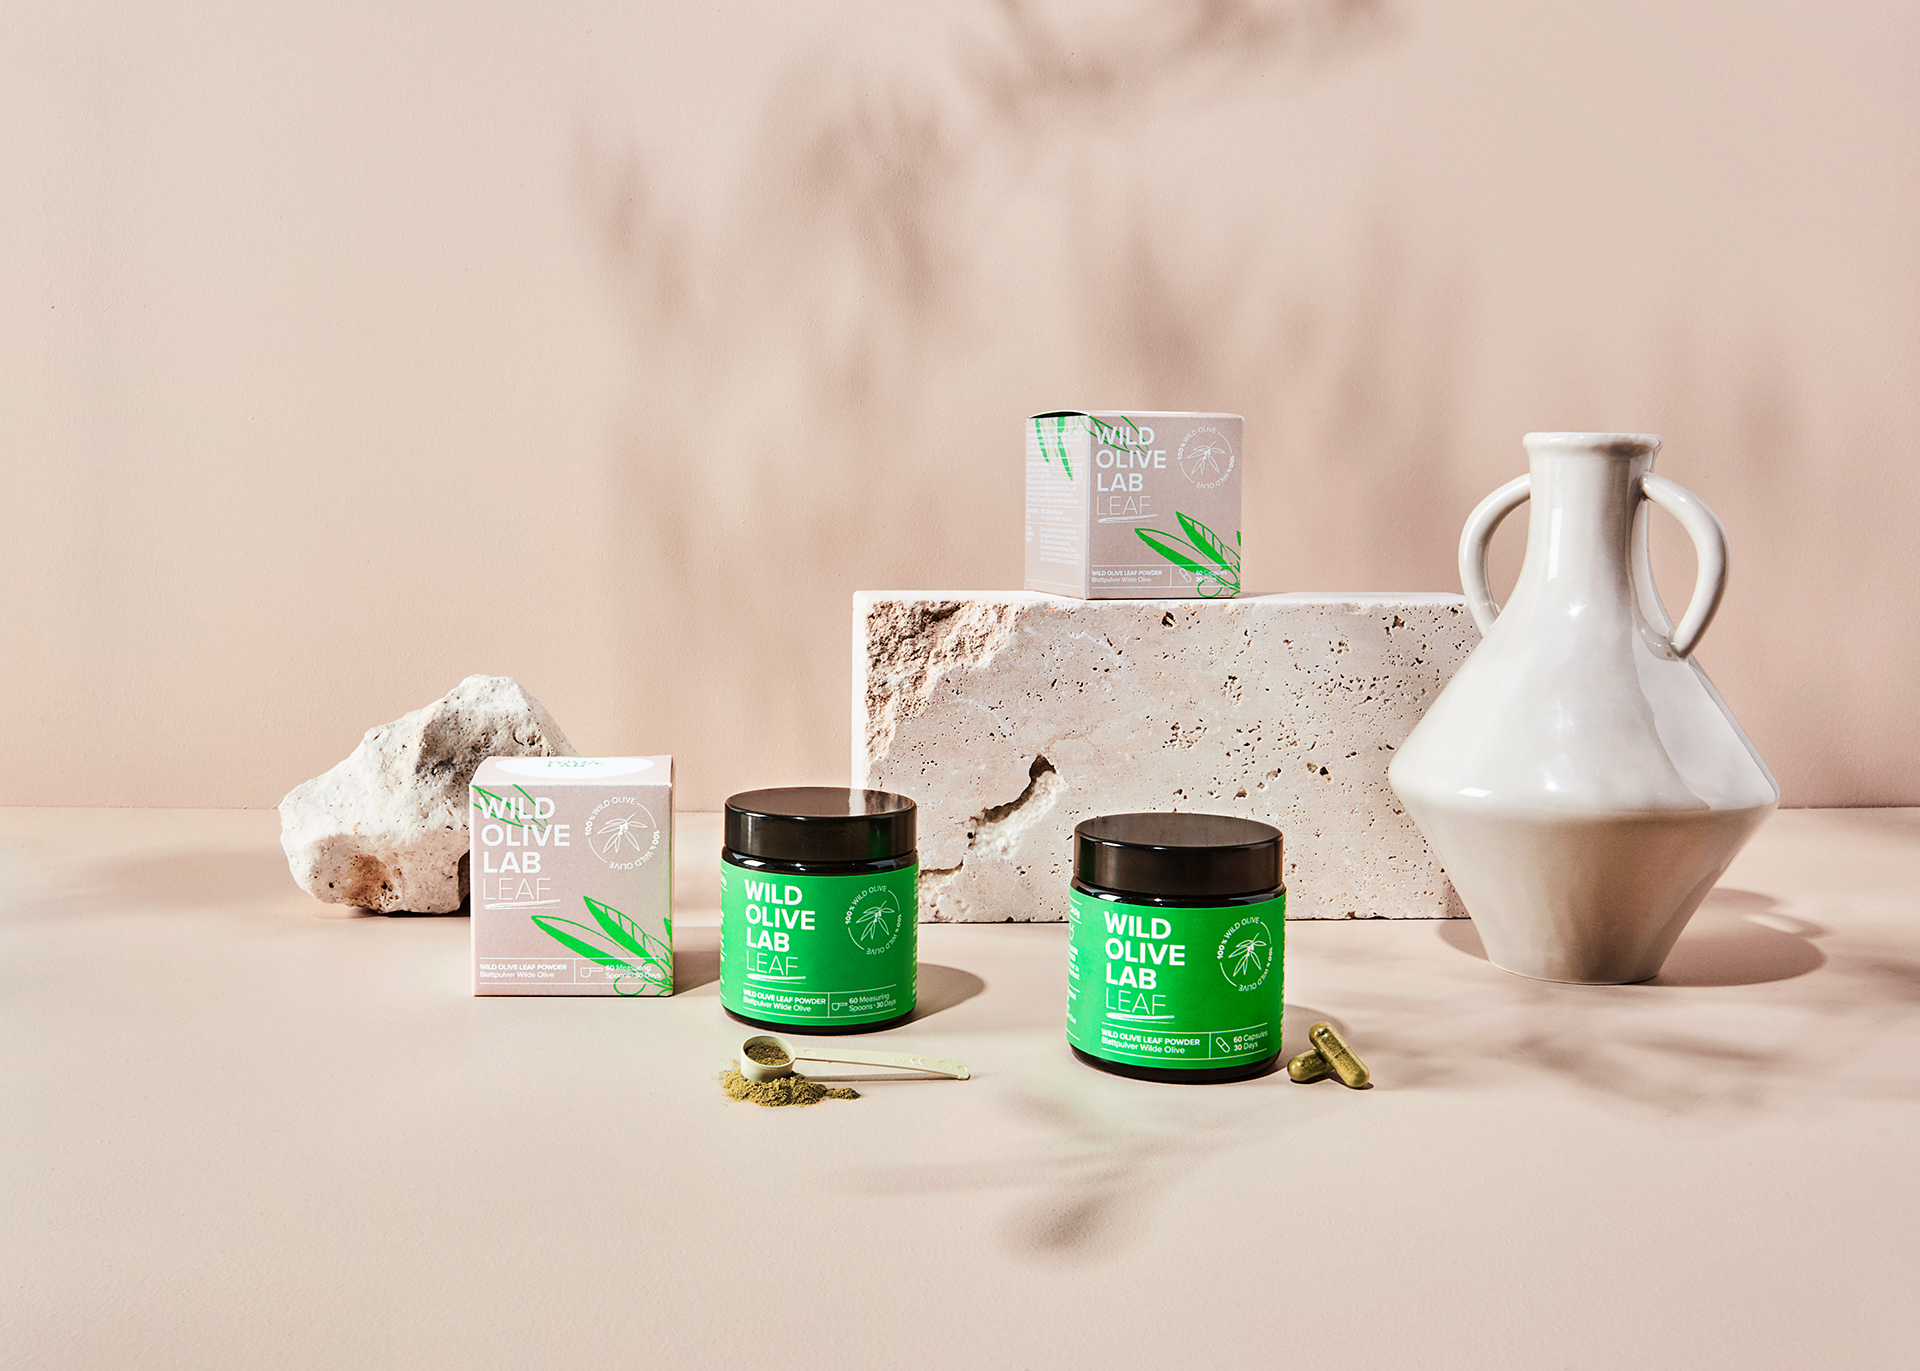 Branding and Packaging for Wild Olive Lab by Design Studio B.O.B